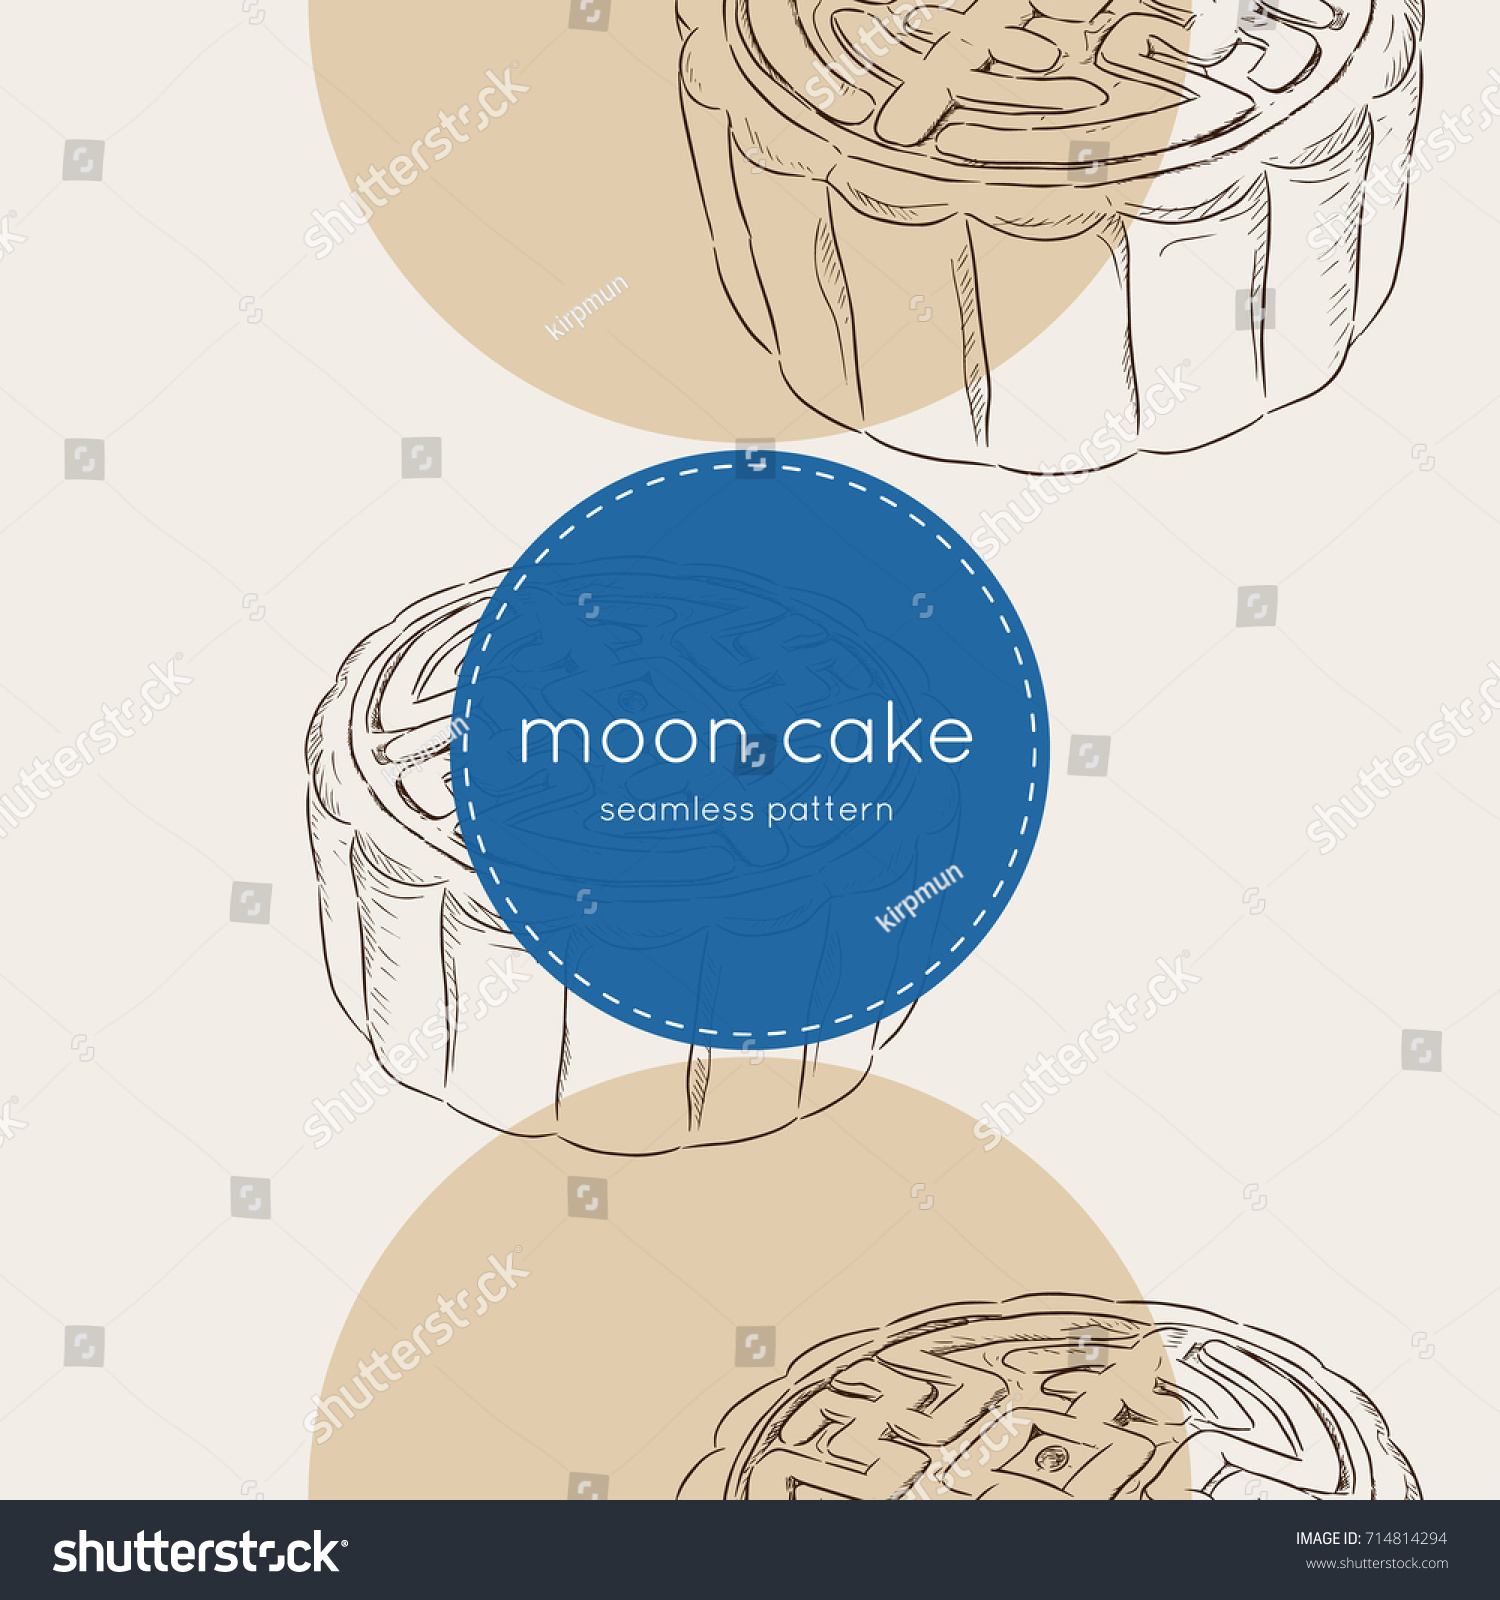 Chinese cuisine moon cake chinese round stock vector 714814294 chinese cuisine moon cake or chinese round pastry filled with red bean or lotus seed pooptronica Images